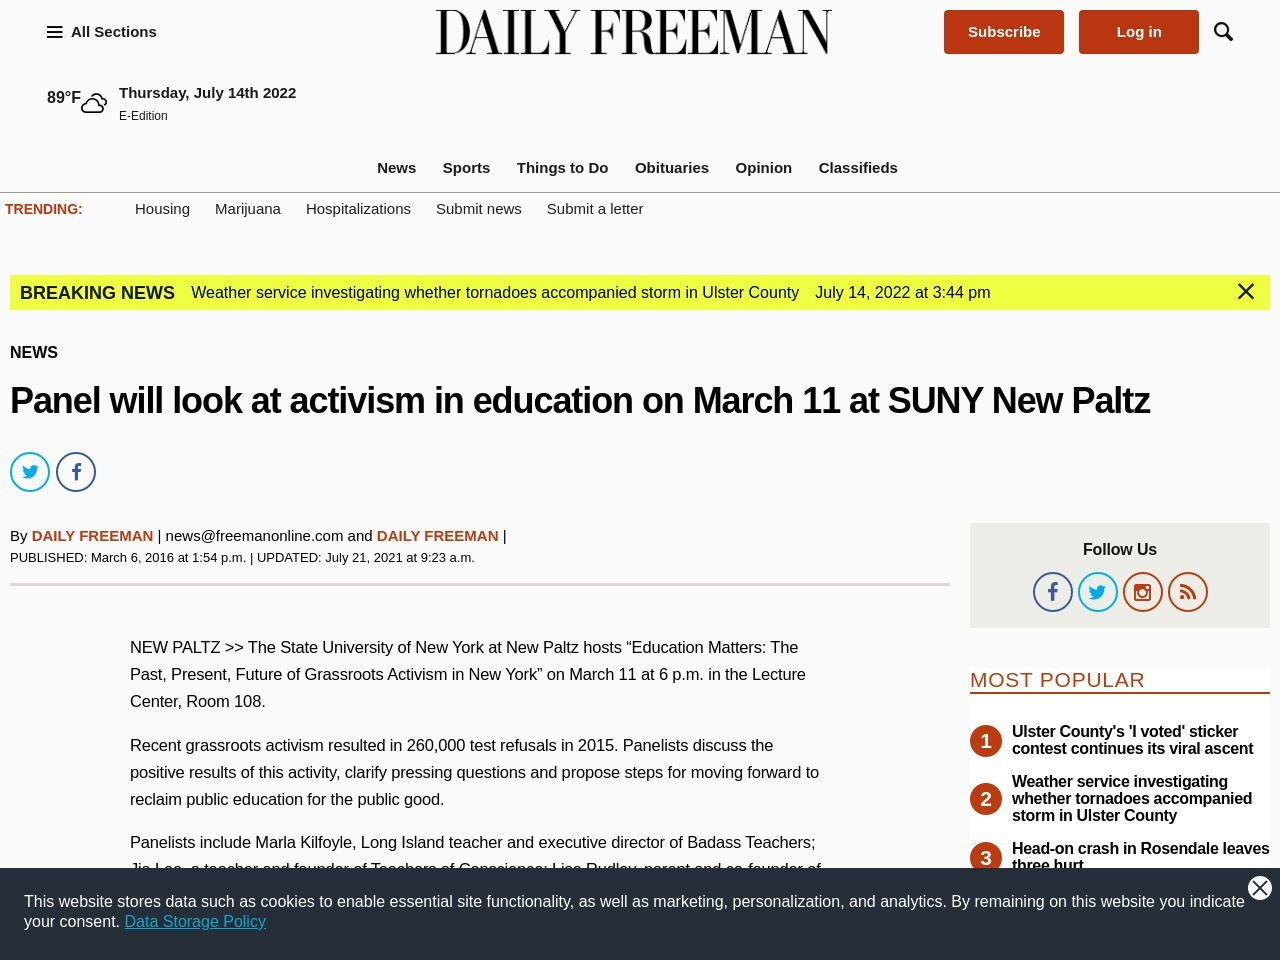 Panel will look at activism in education on March 11 at SUNY New Paltz